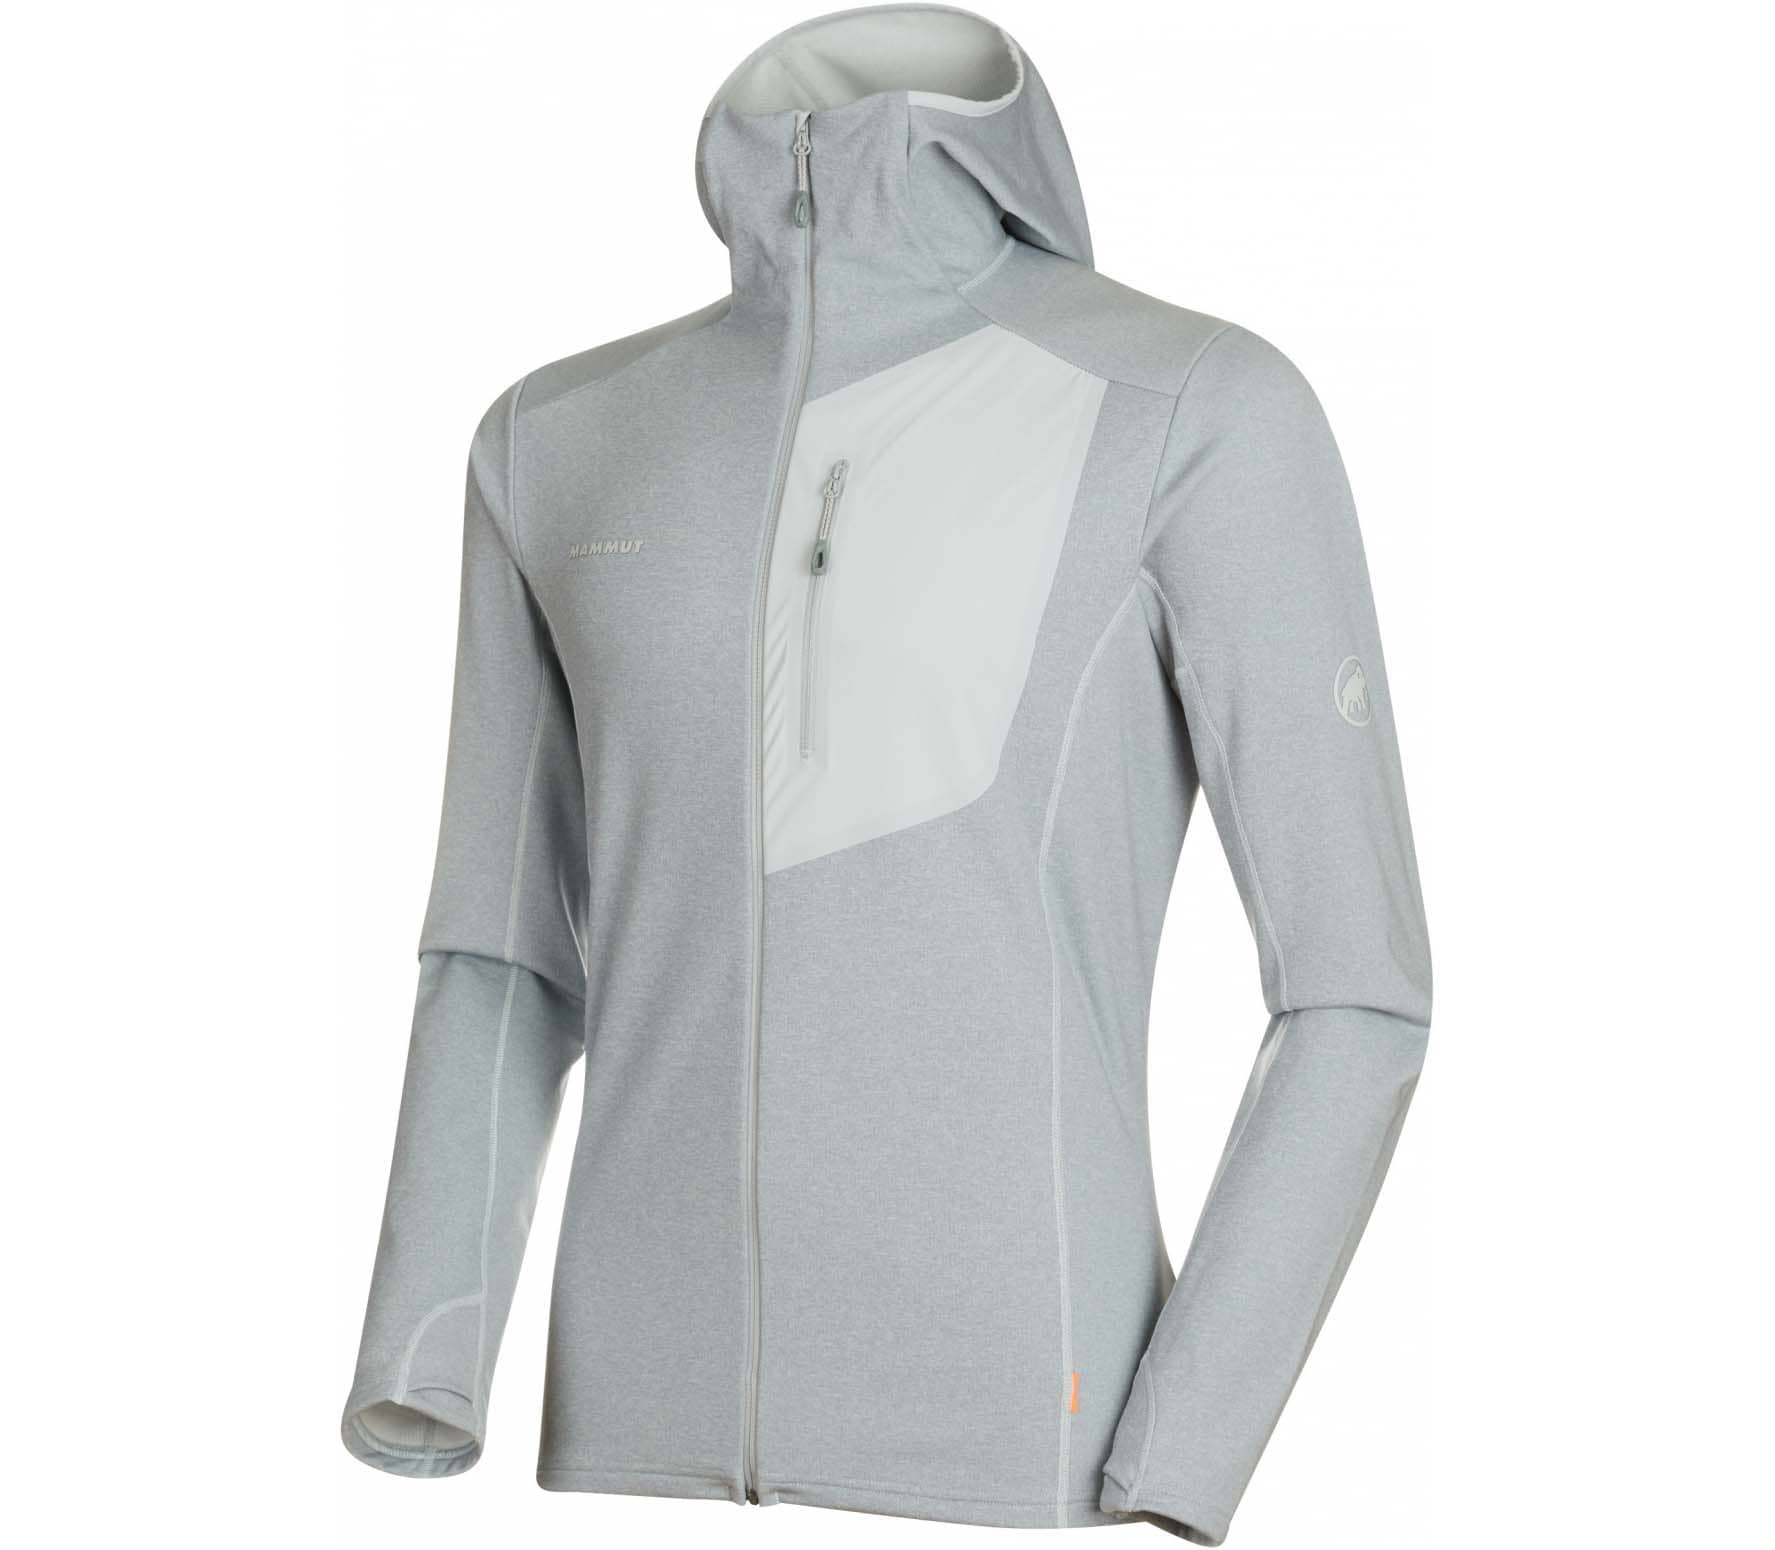 new products e7787 19add Mammut Aconcagua Light ML Uomo Giacca in pile grigio